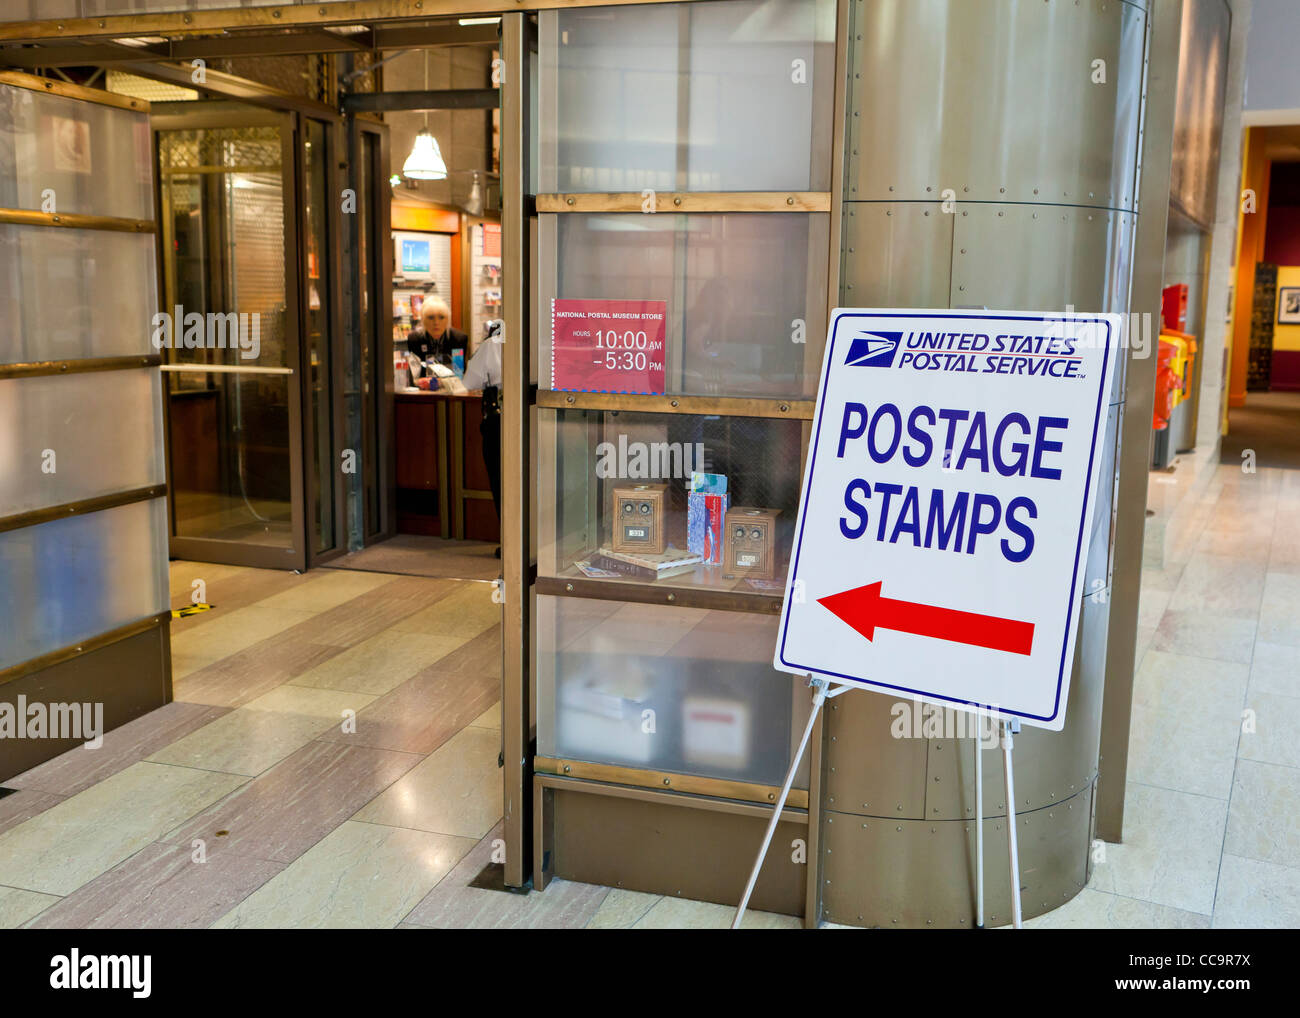 Postage stamps sign in front of post office - Stock Image